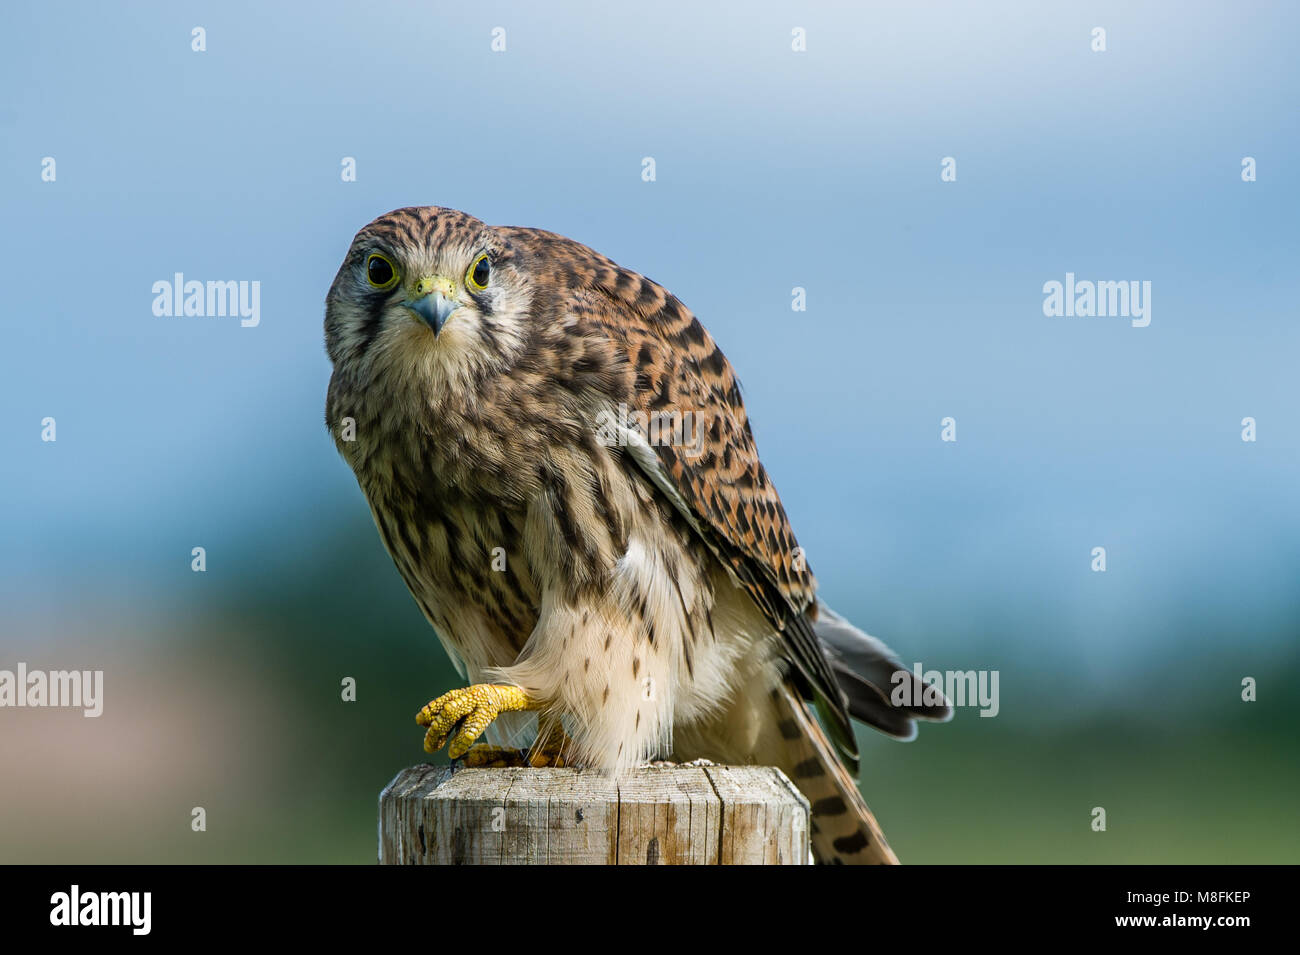 A beautiful young kestrel perching on a wooden roundpole fence looking behind you with a nice defocused background - Stock Image